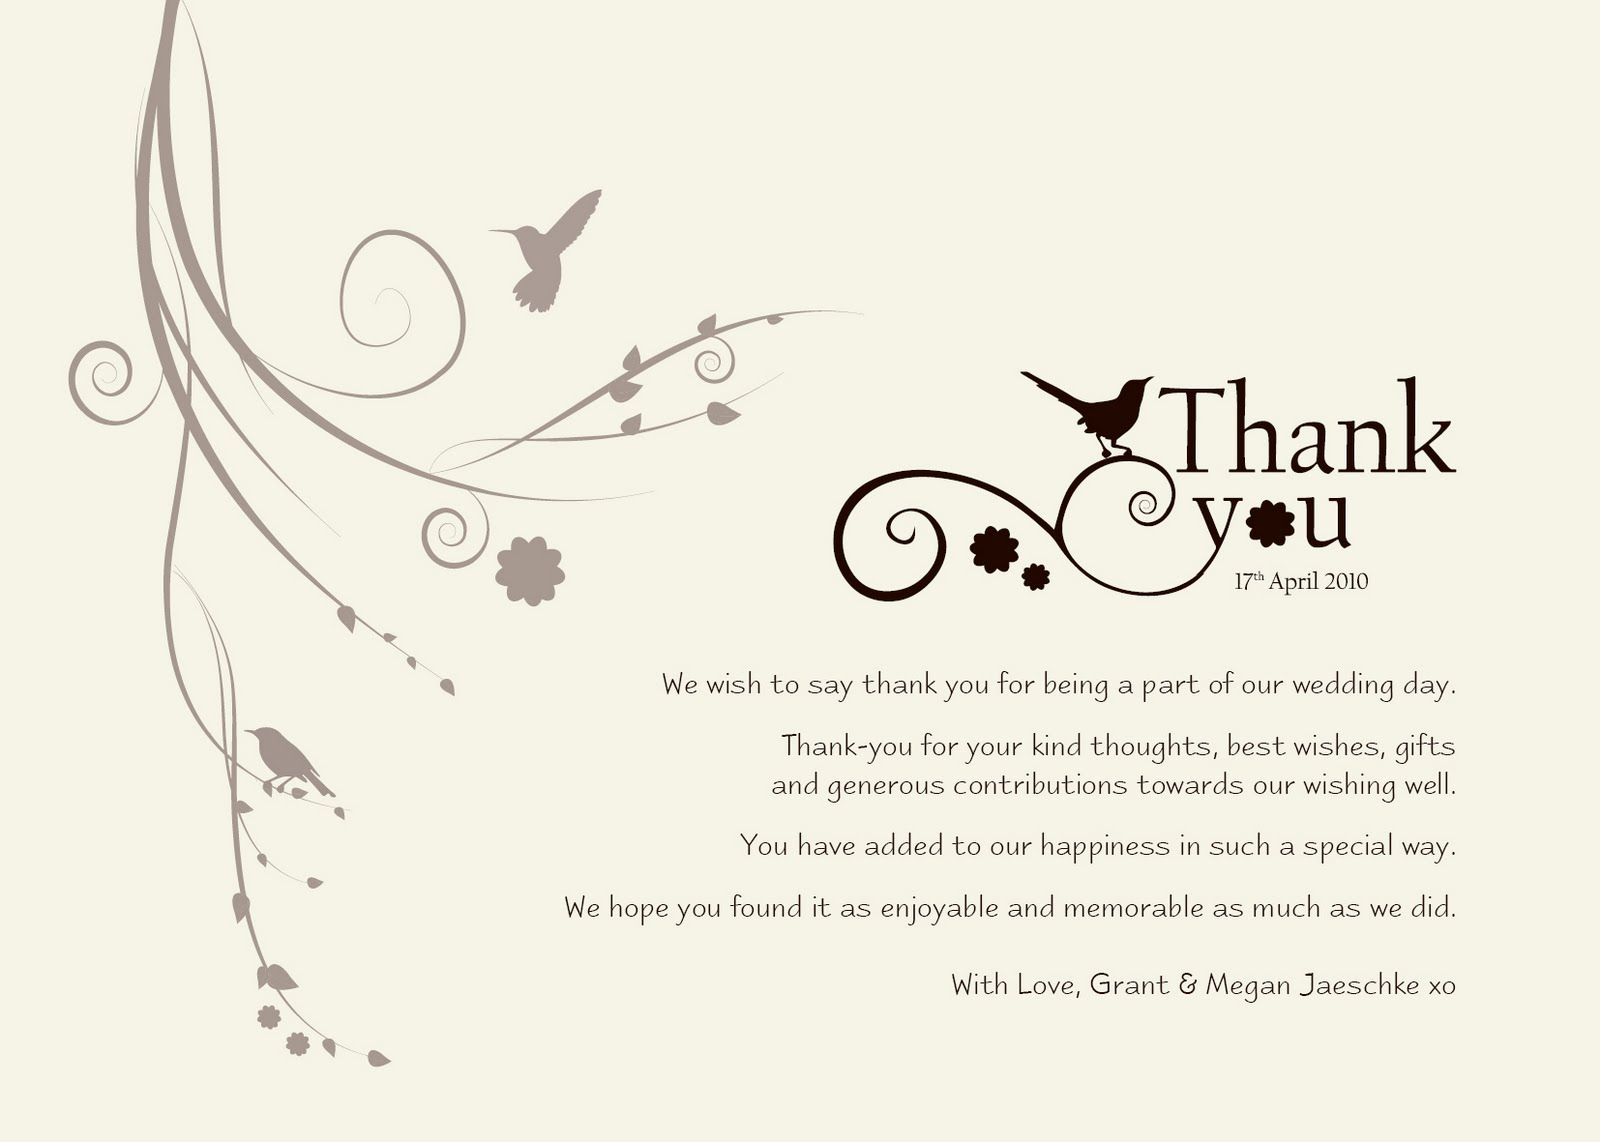 Thank You Card Wording Ideas Wedding – Wording for Wedding Thank You Cards